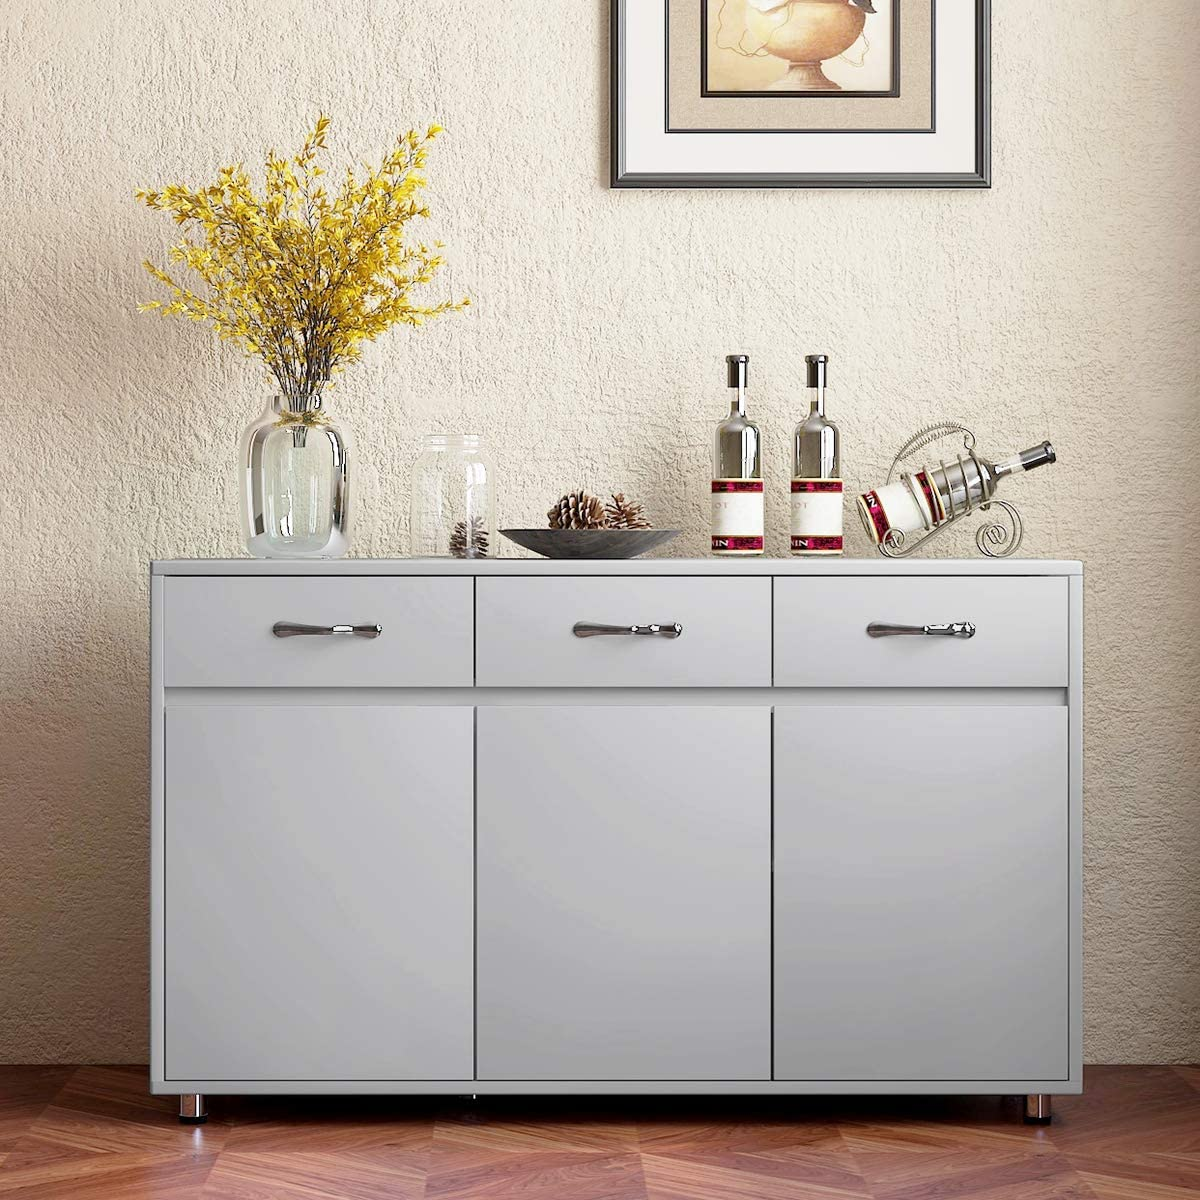 Amazon Com Kitchen Buffet Cabinet Dining Room Sideboard With 3 Drawers Buffet Table With Storage Grey Storage Cabinet Grey Buffets Sideboards